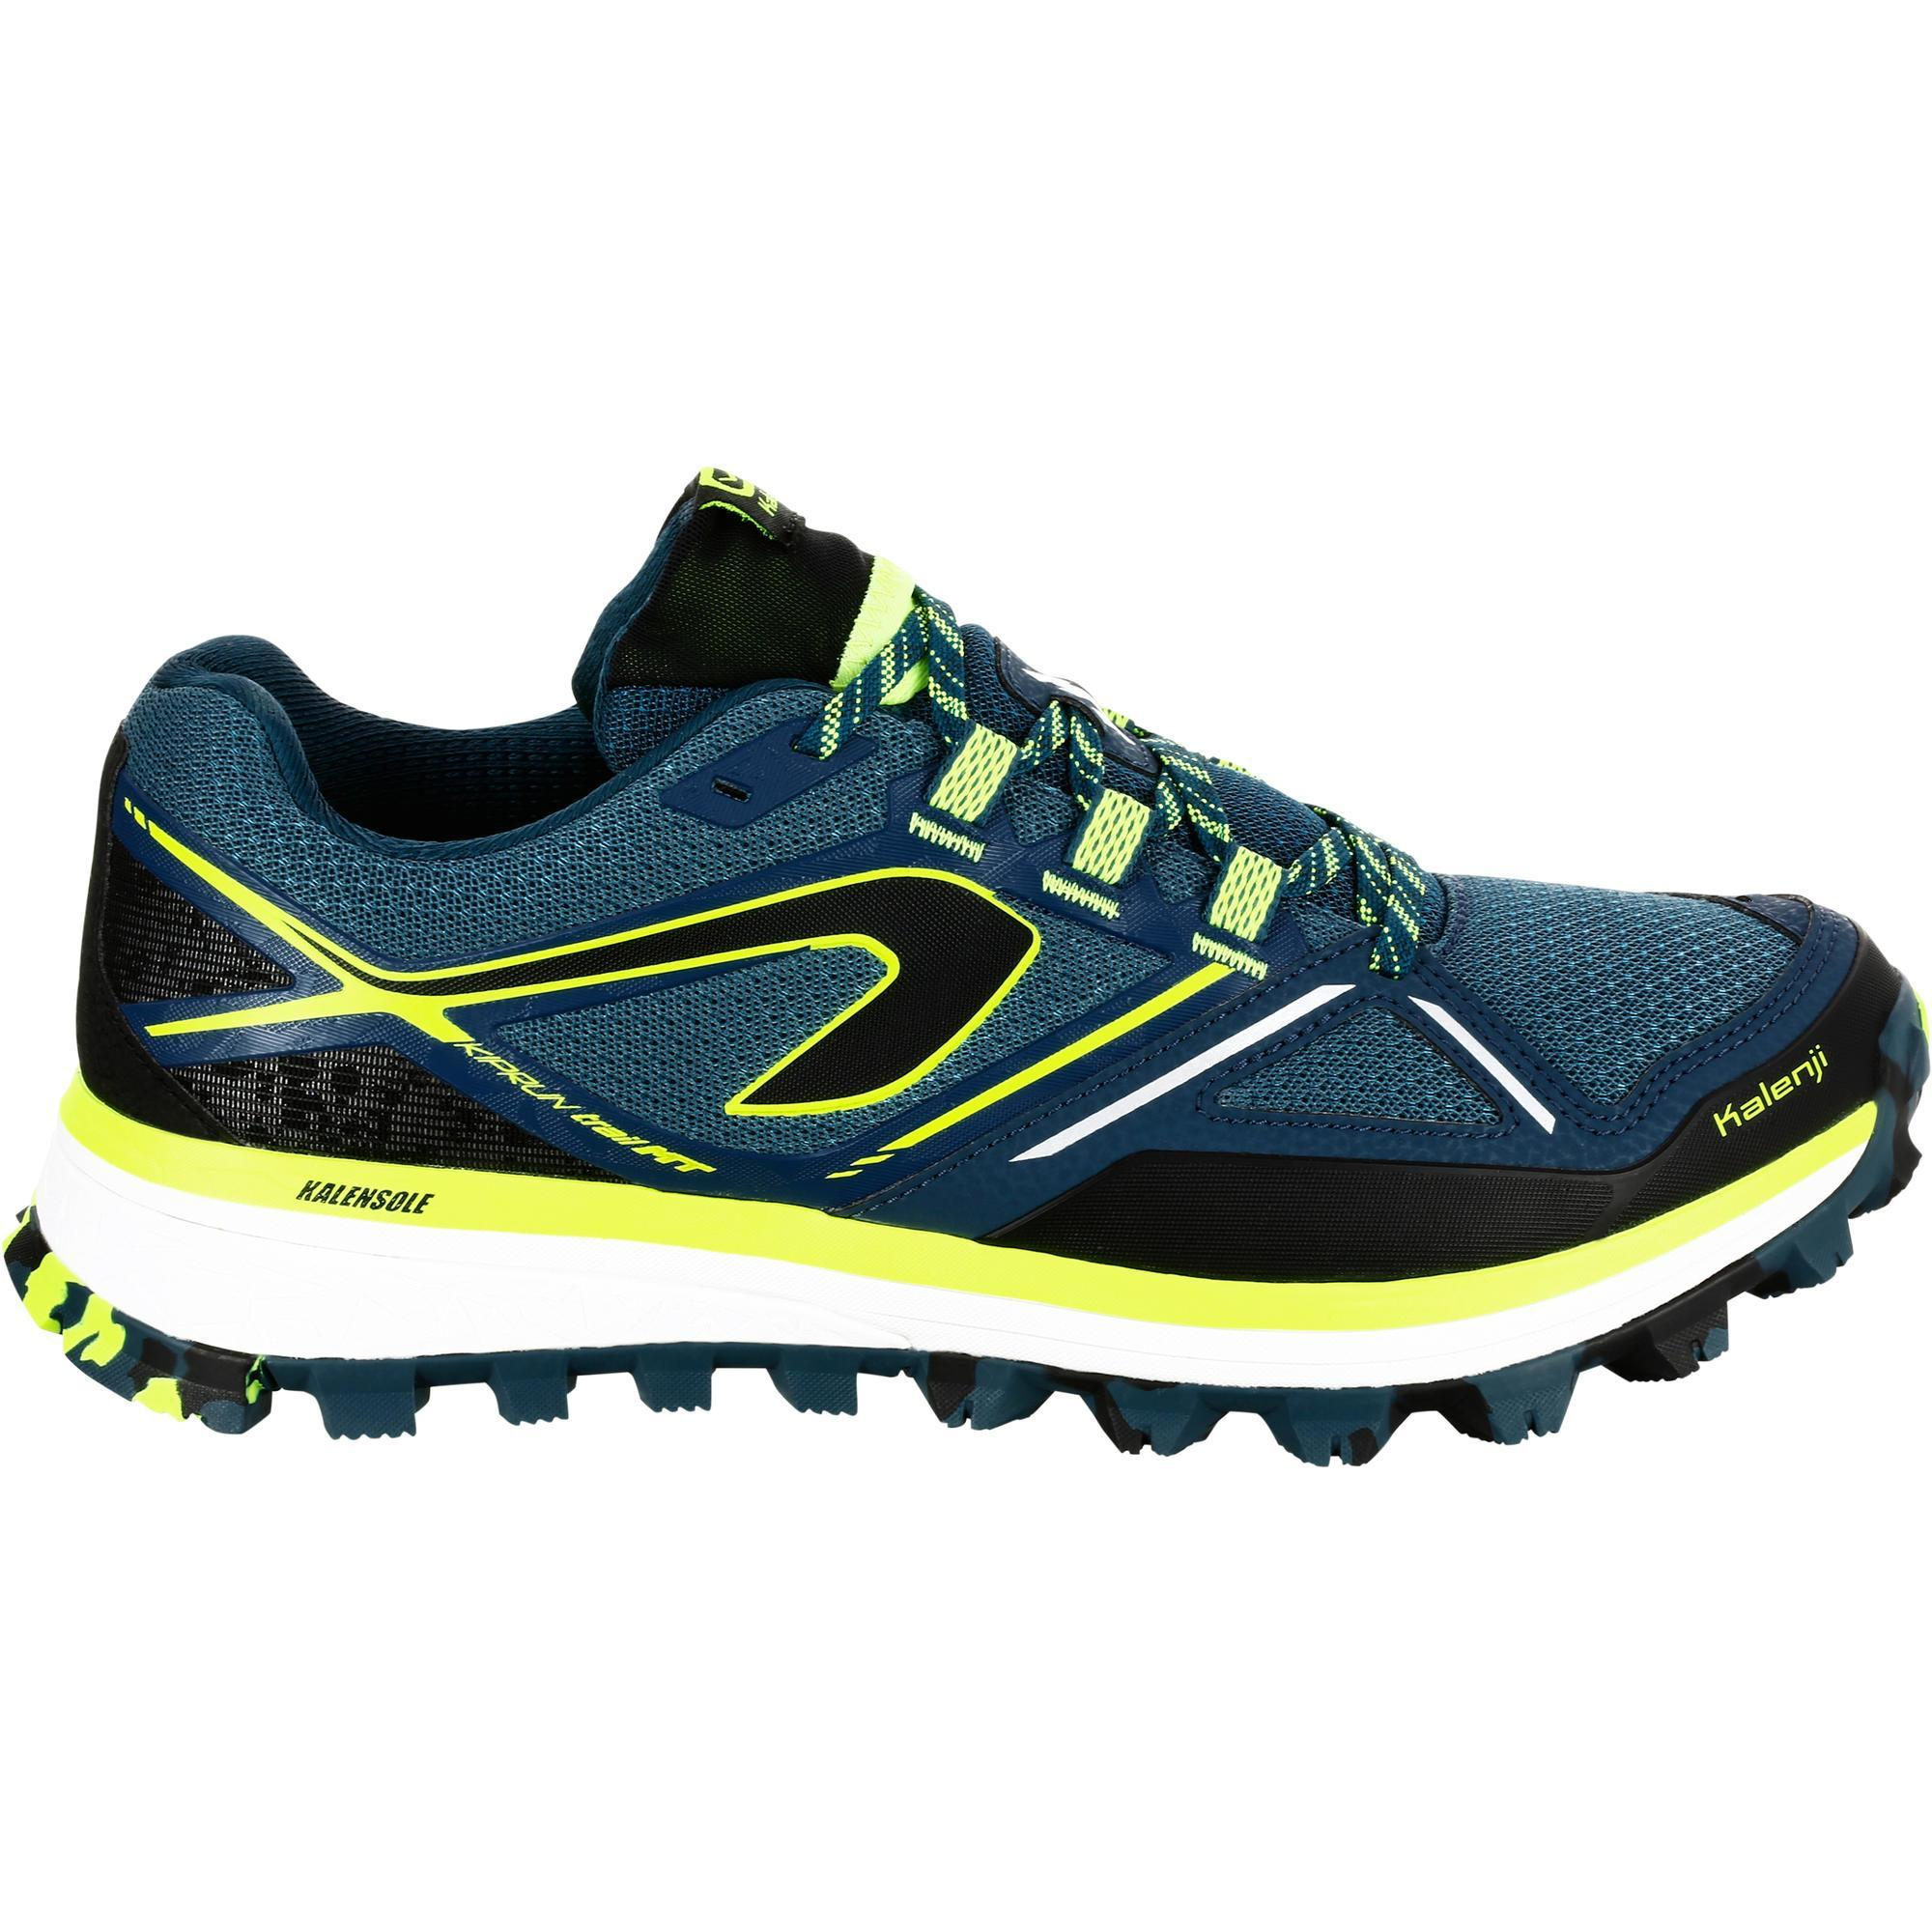 sports shoes cfbef ffb35 Decathlon Kalenji Trail Homme Running Chaussures Kiprun Mt 6HqYA76.